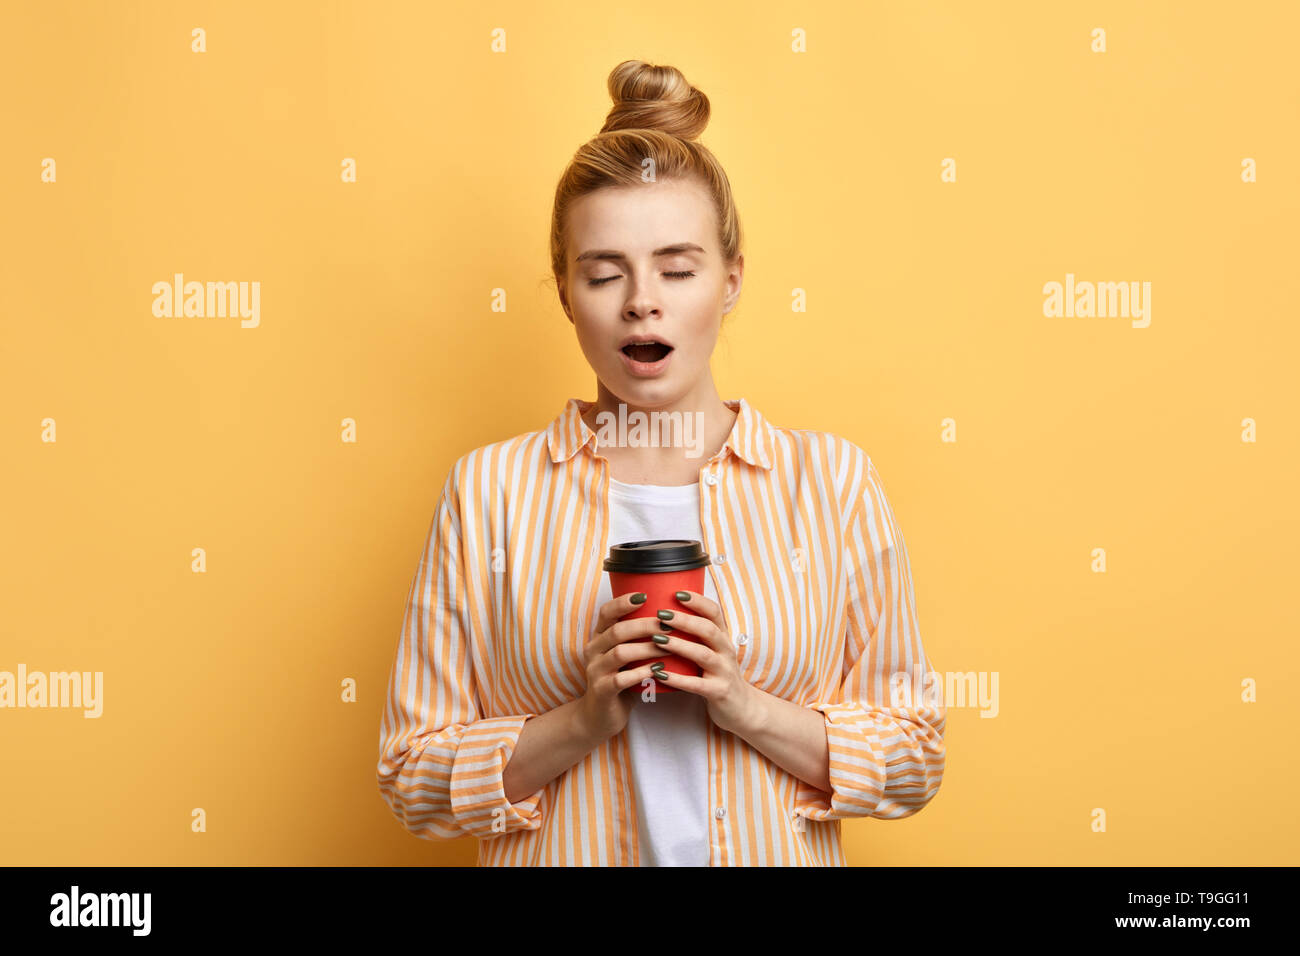 exhausted young blonde woman wants to sleep. attractive woman with closed eyes holding a disposable cup and yawning. isolated yellow background - Stock Image